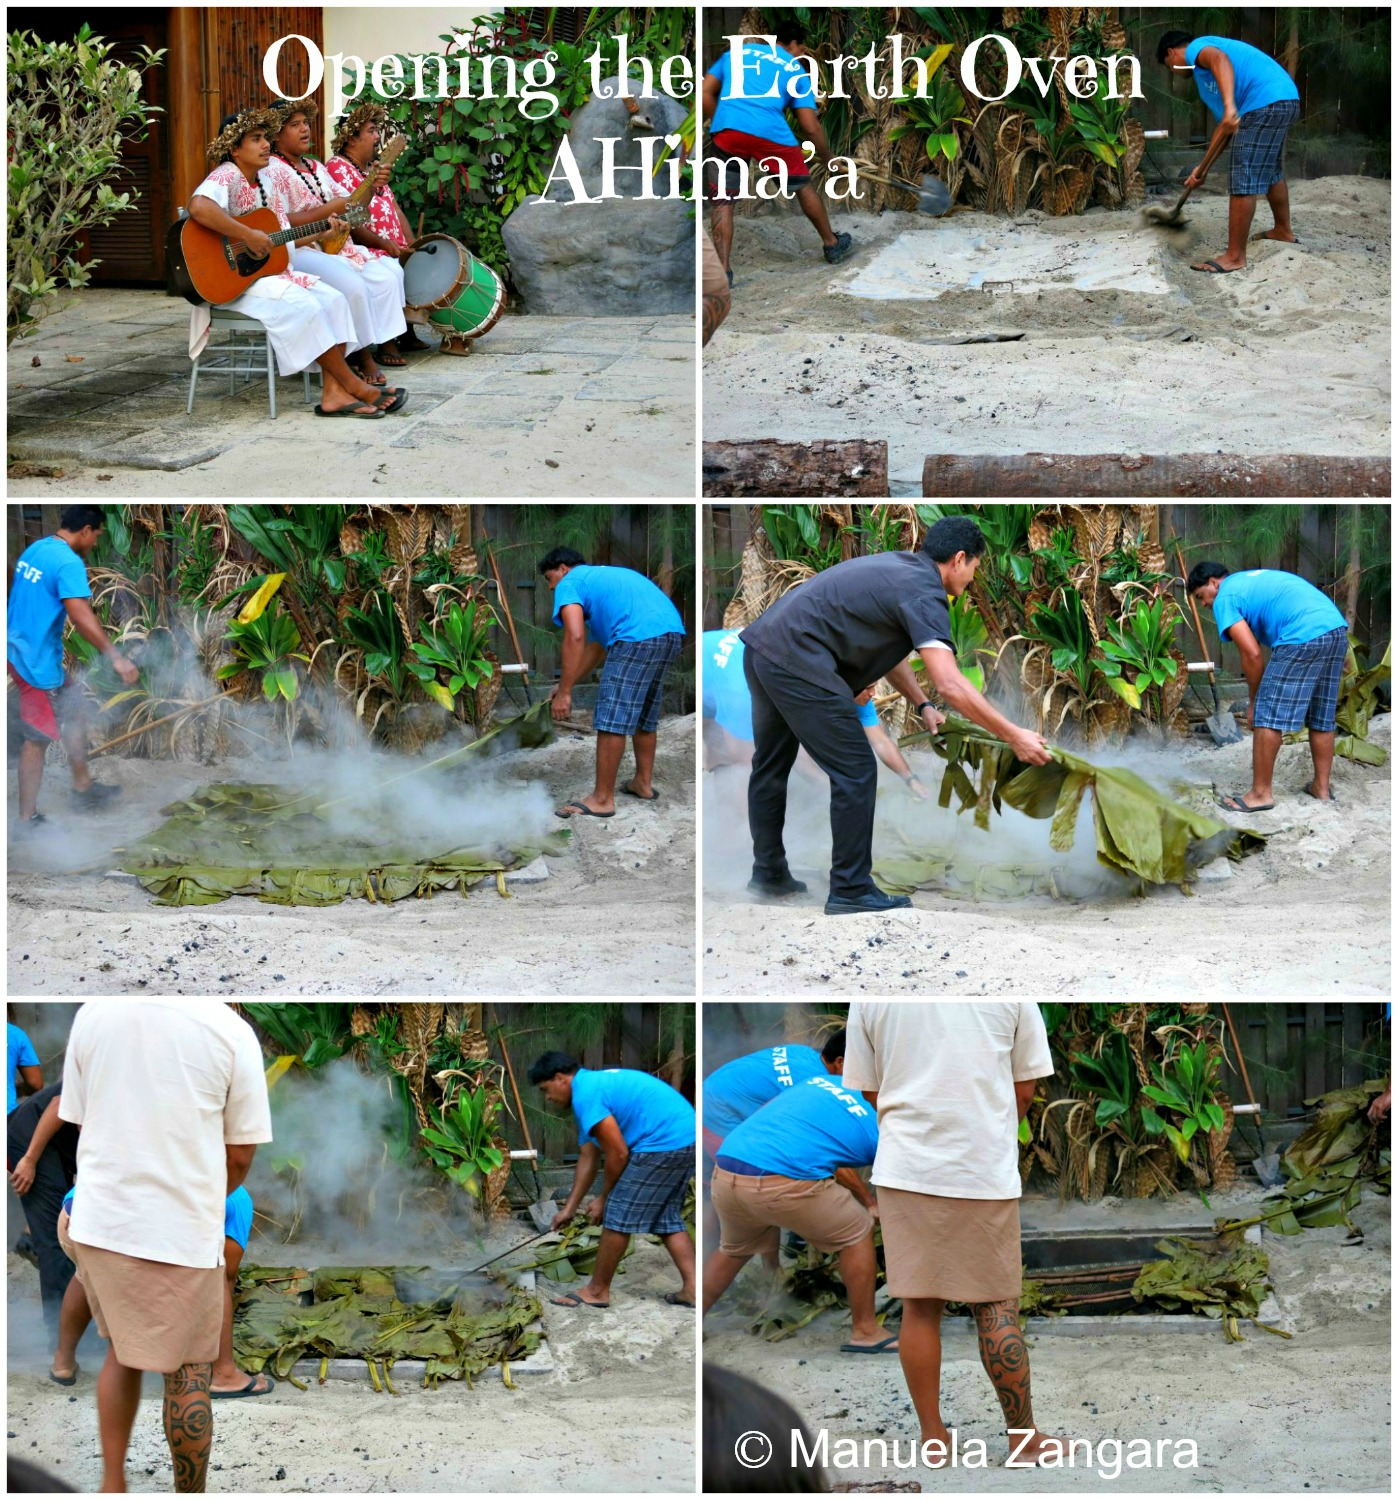 Earth oven HM